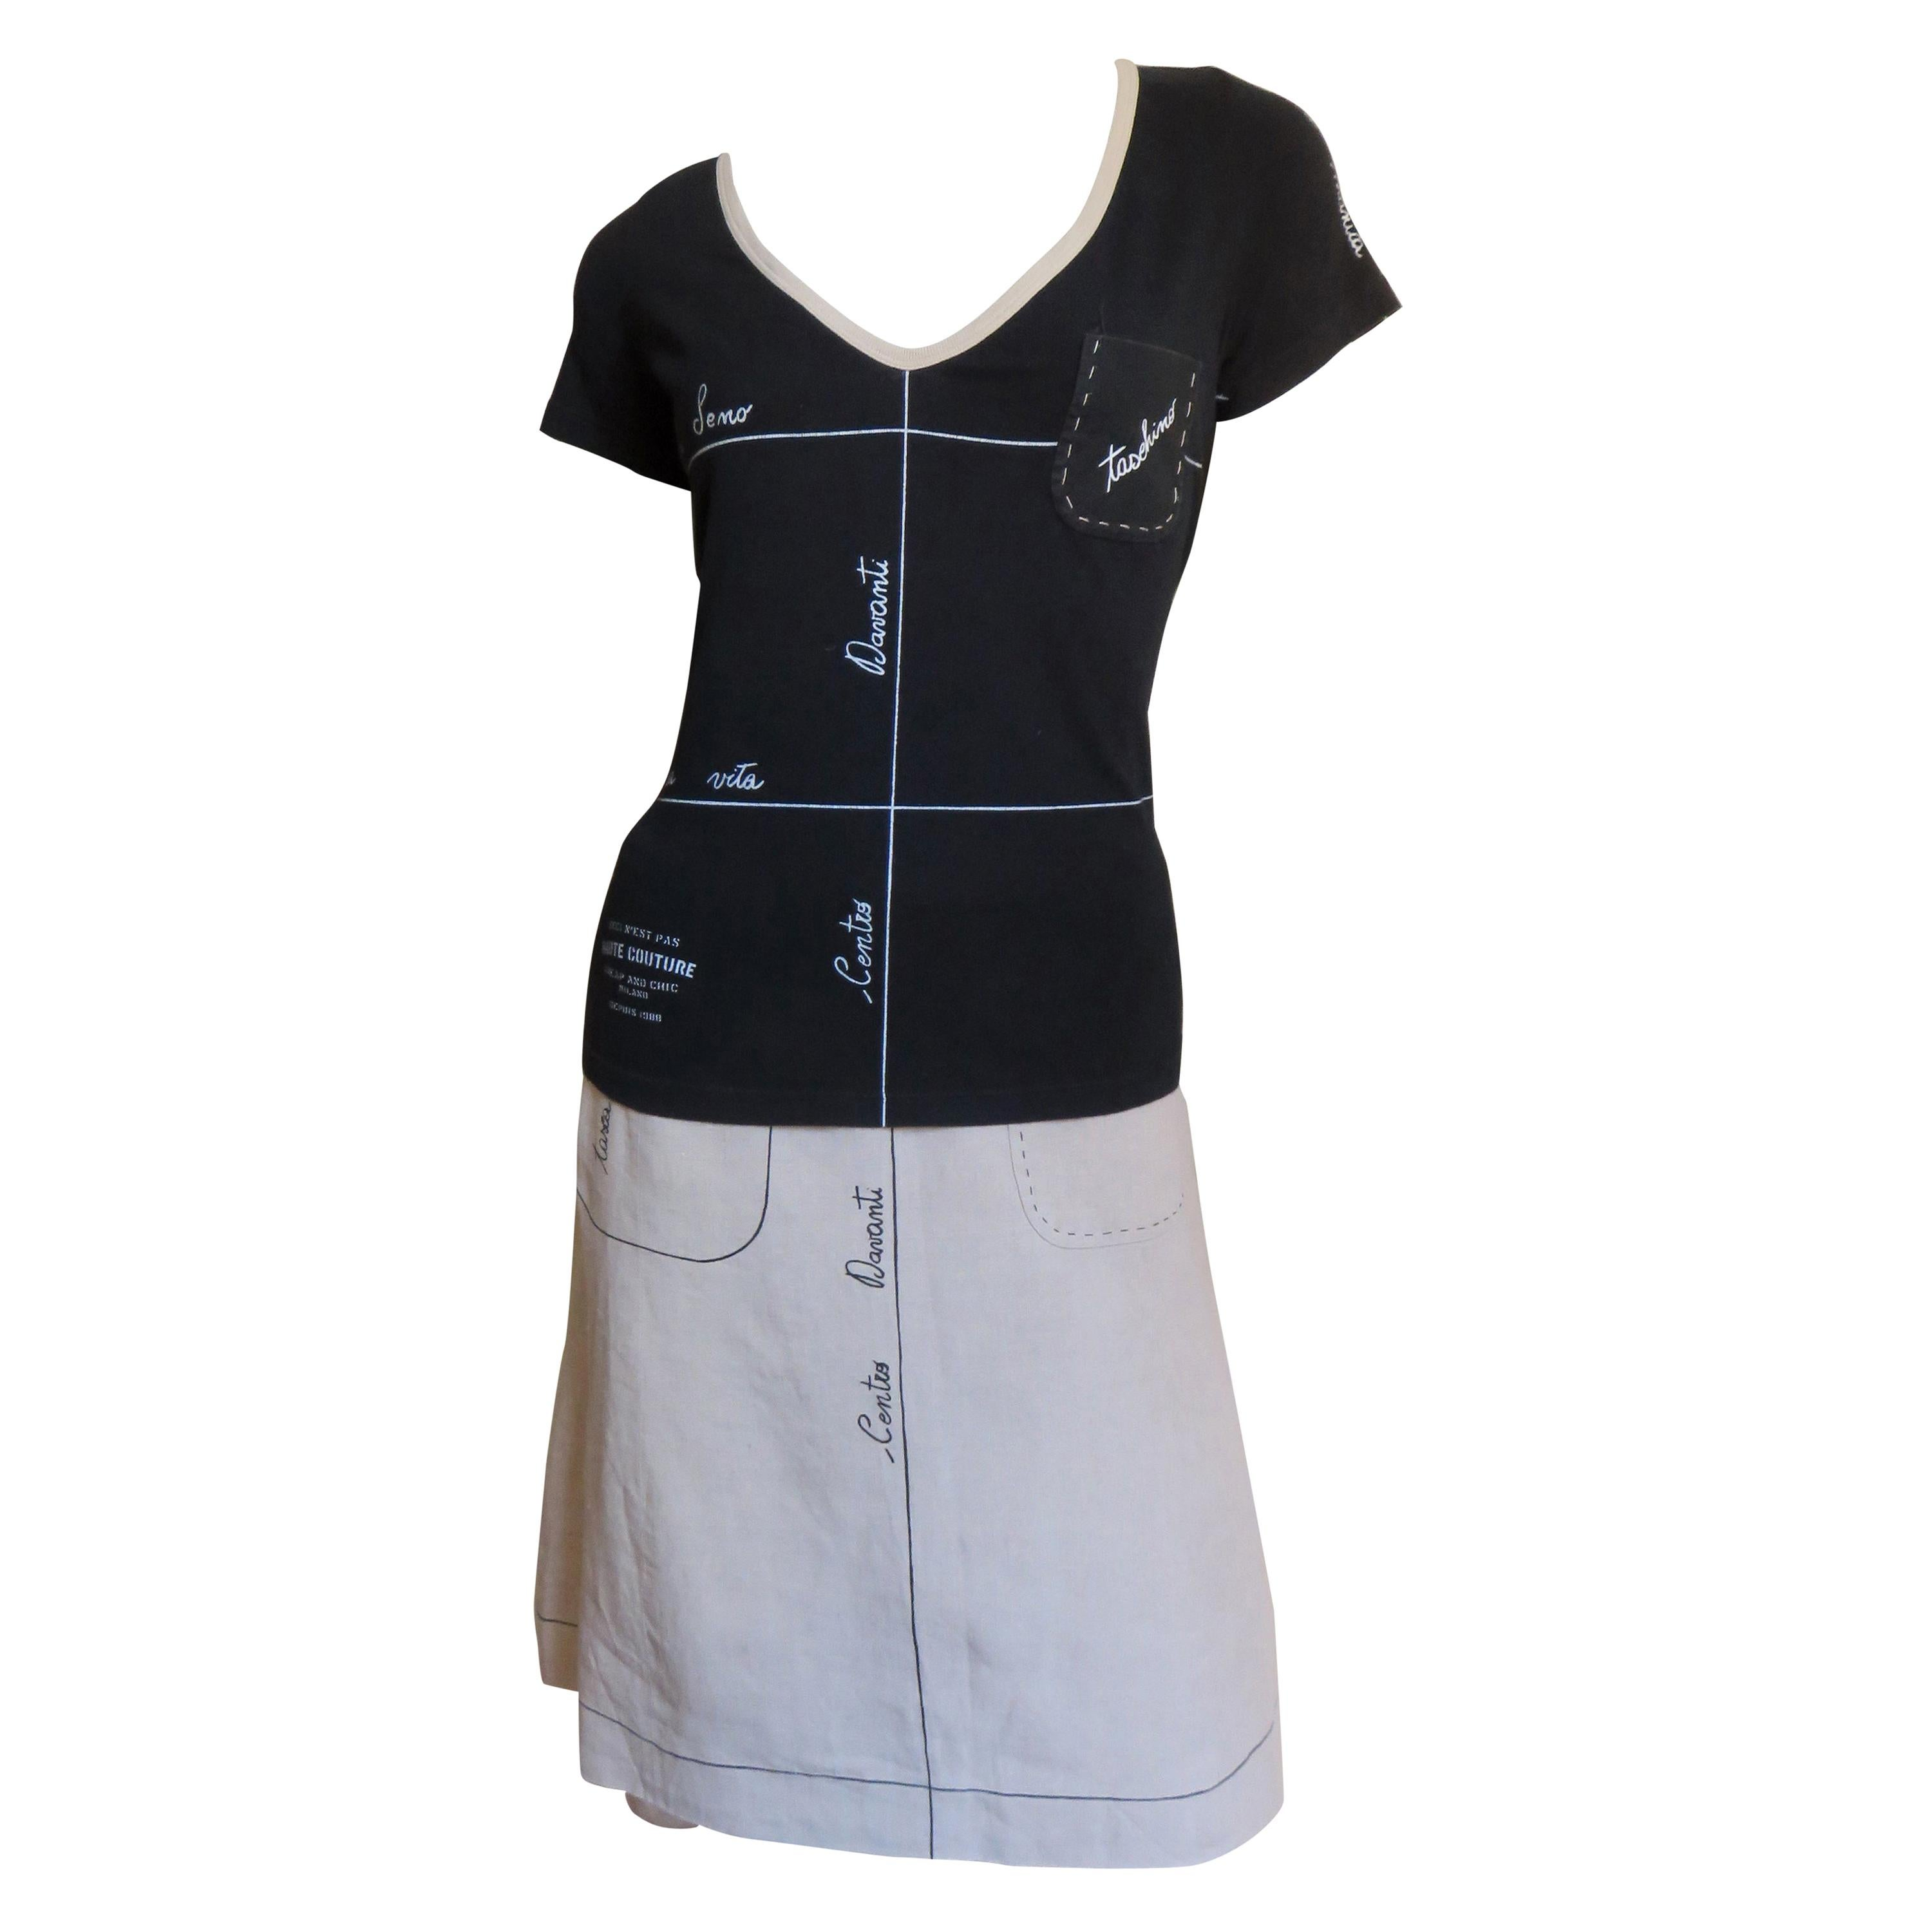 Moschino Color Block Linen Skirt and T Shirt with Italian Words